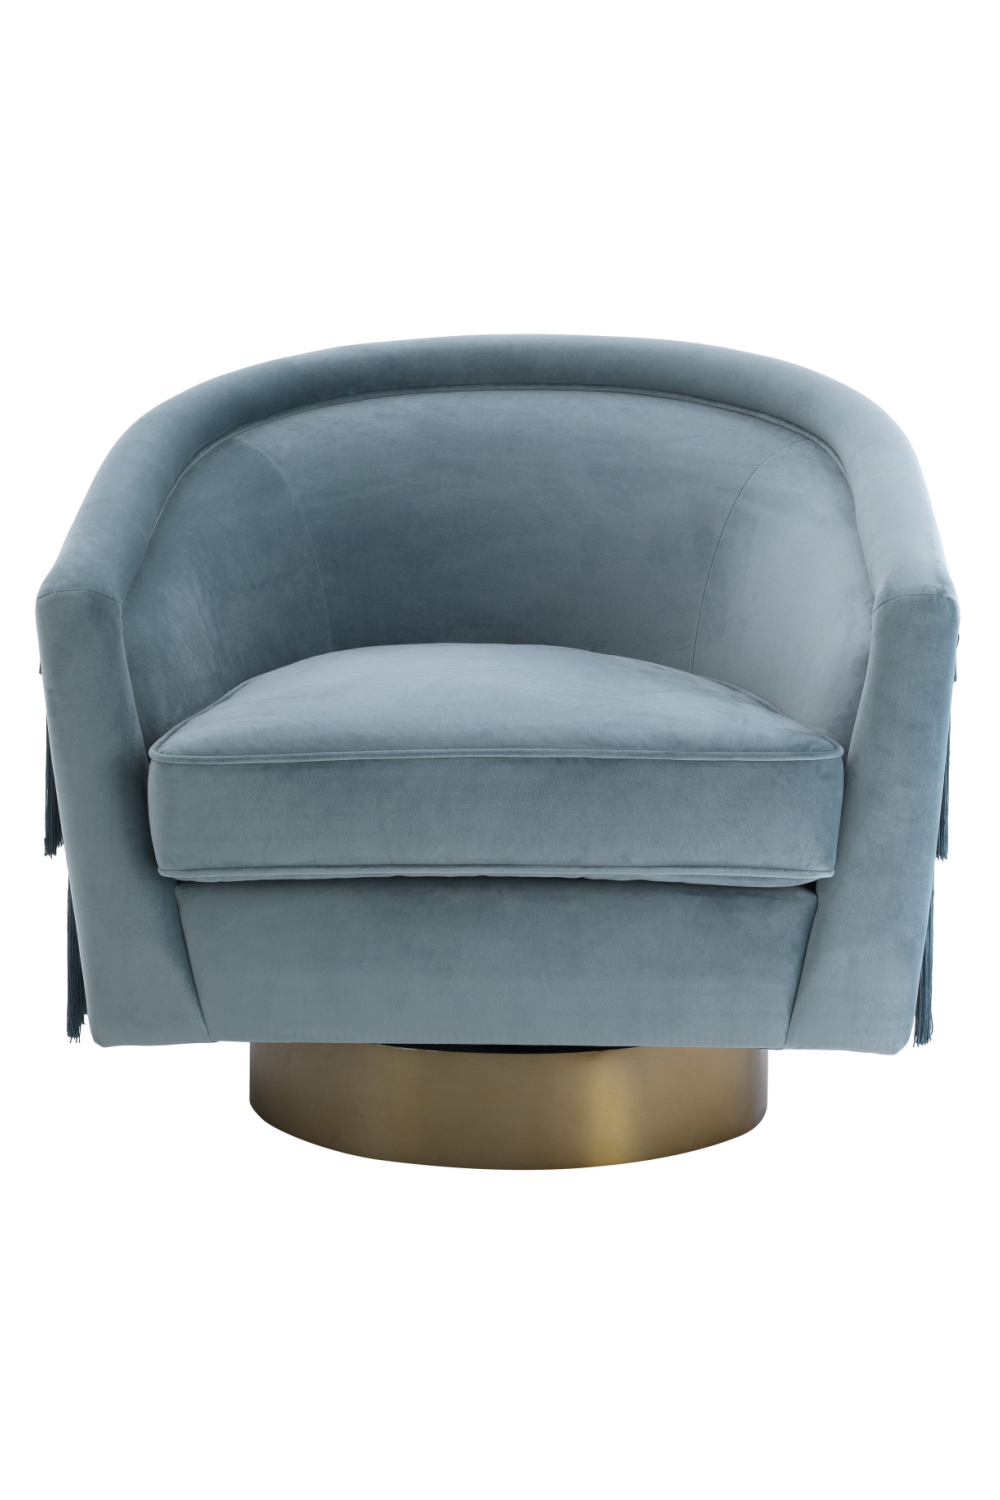 Blue Velvet Swivel Chair | Eichholtz Le Vante